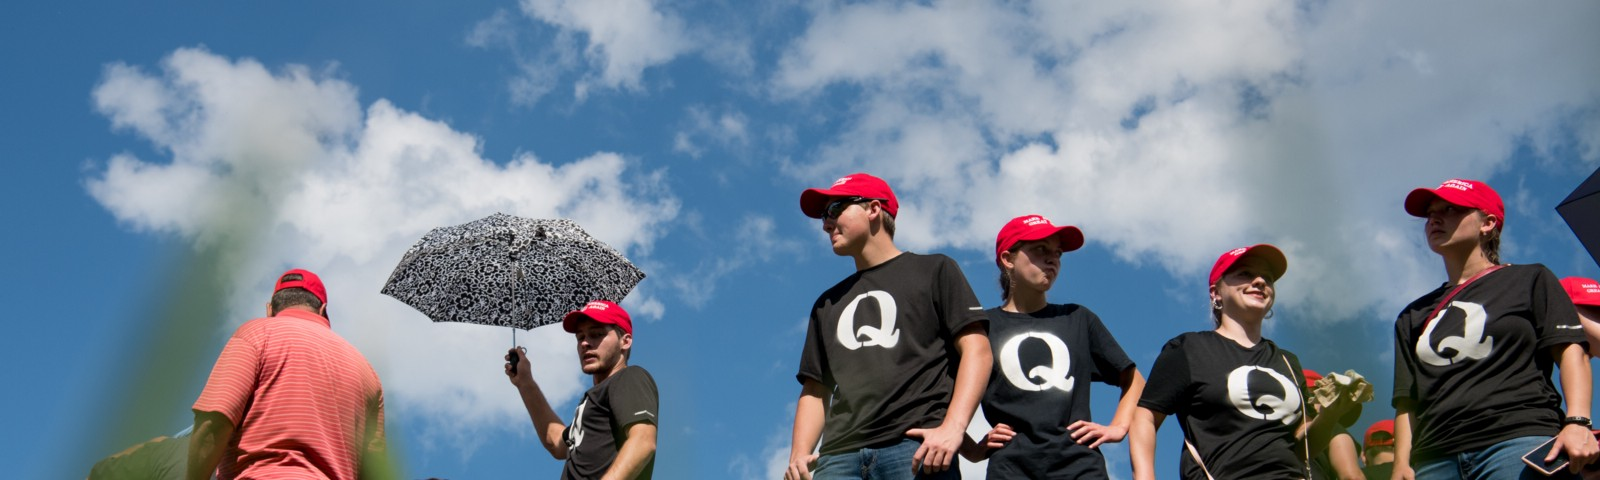 Supporters of President Donald Trump wearing 'QAnon' t-shirts wait in line before a campaign rally at Freedom Hall on 10/1/18